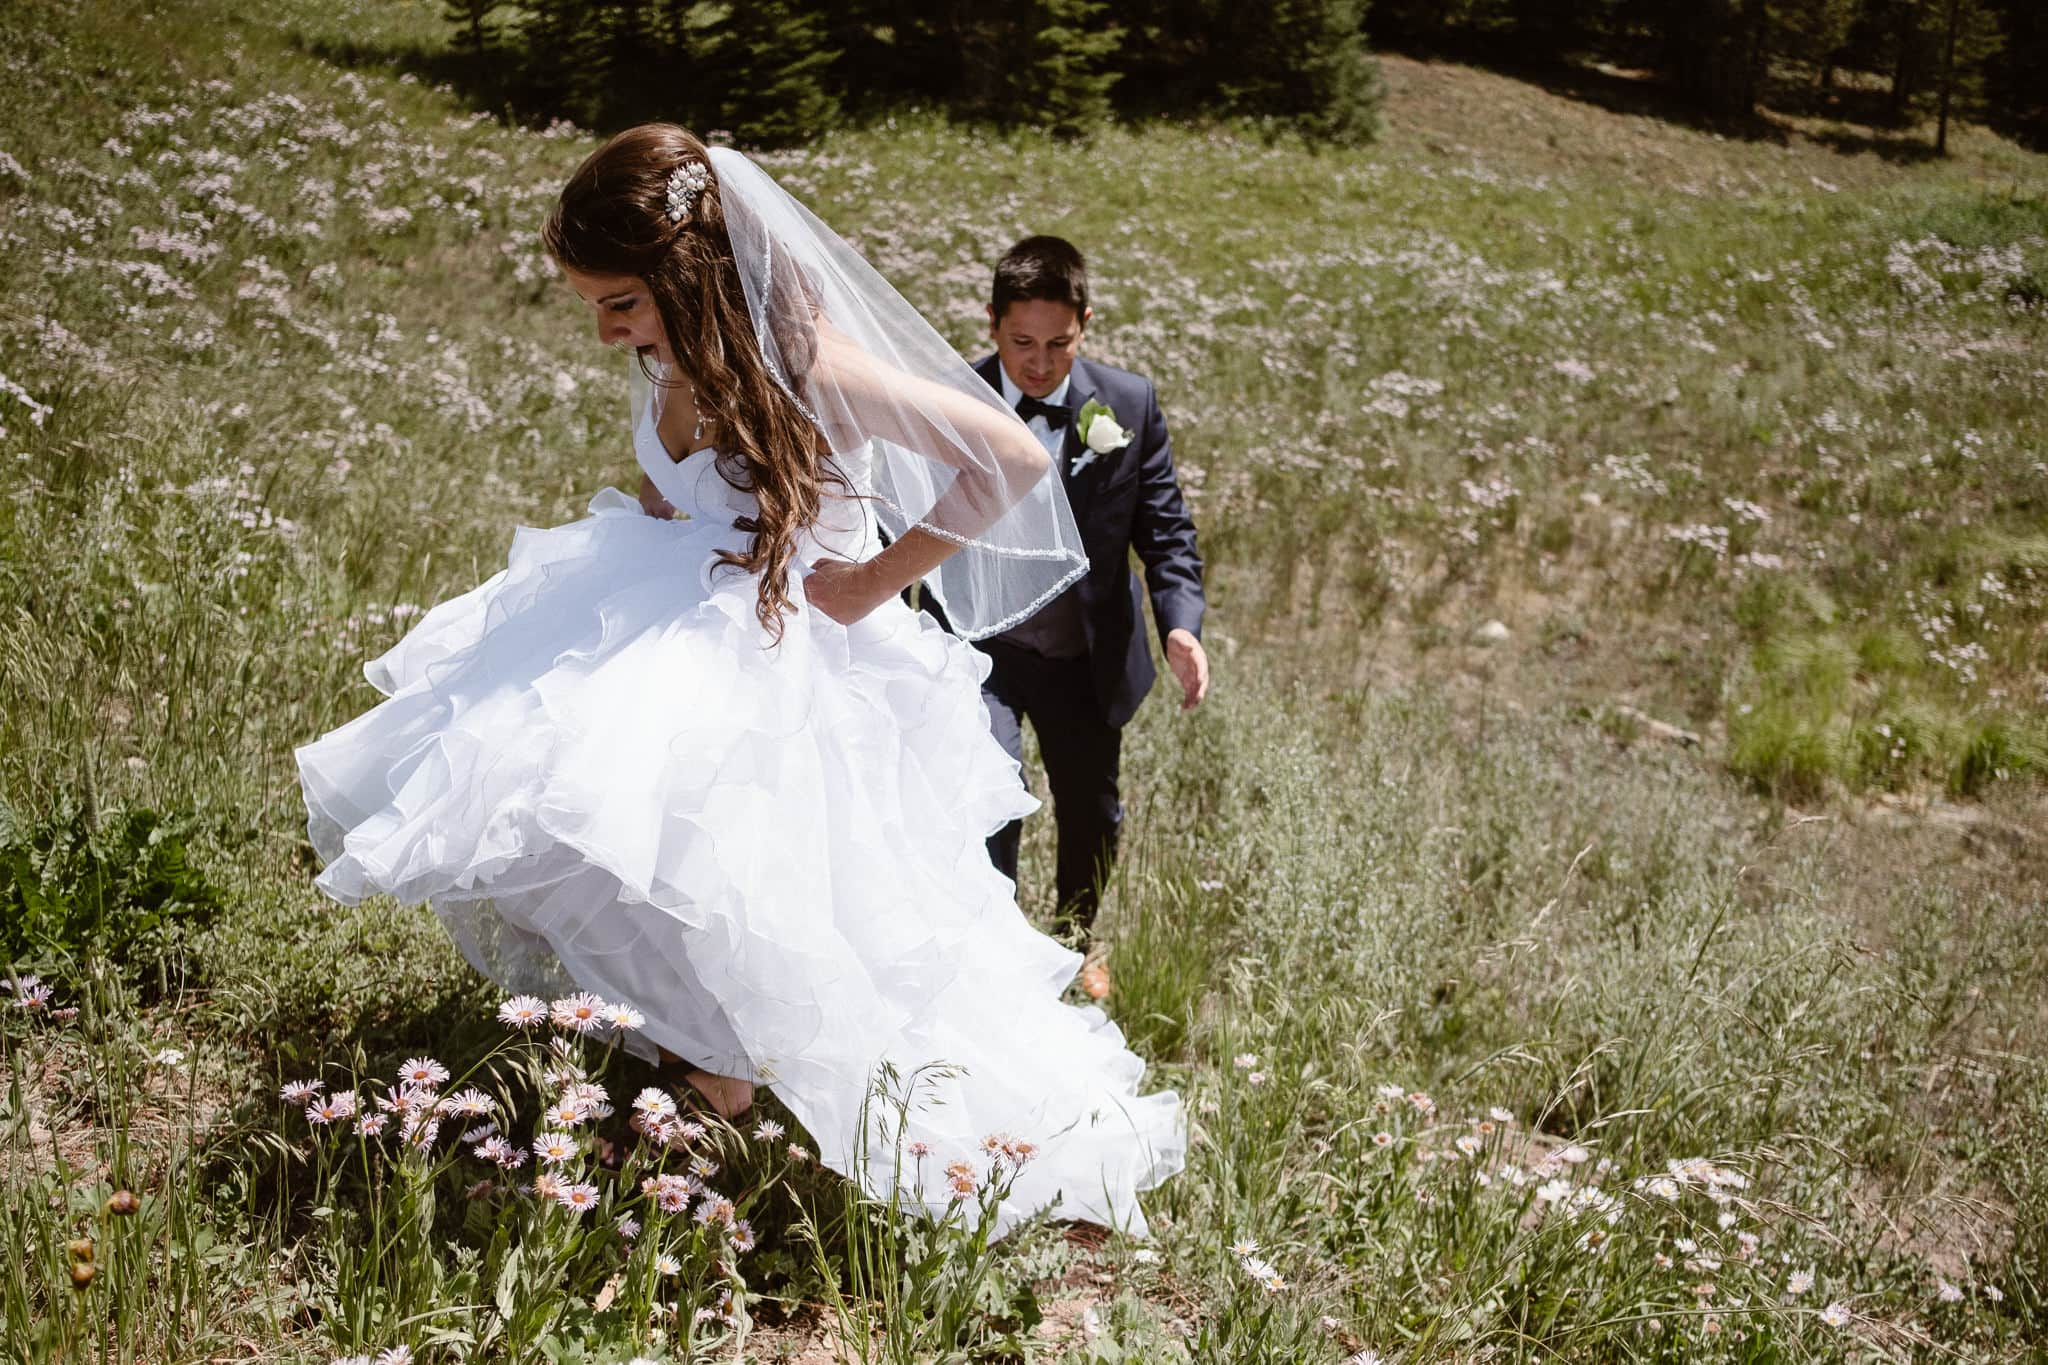 Bride and groom hiking in wildflowers in the mountains at The Lodge at Breckenridge wedding.